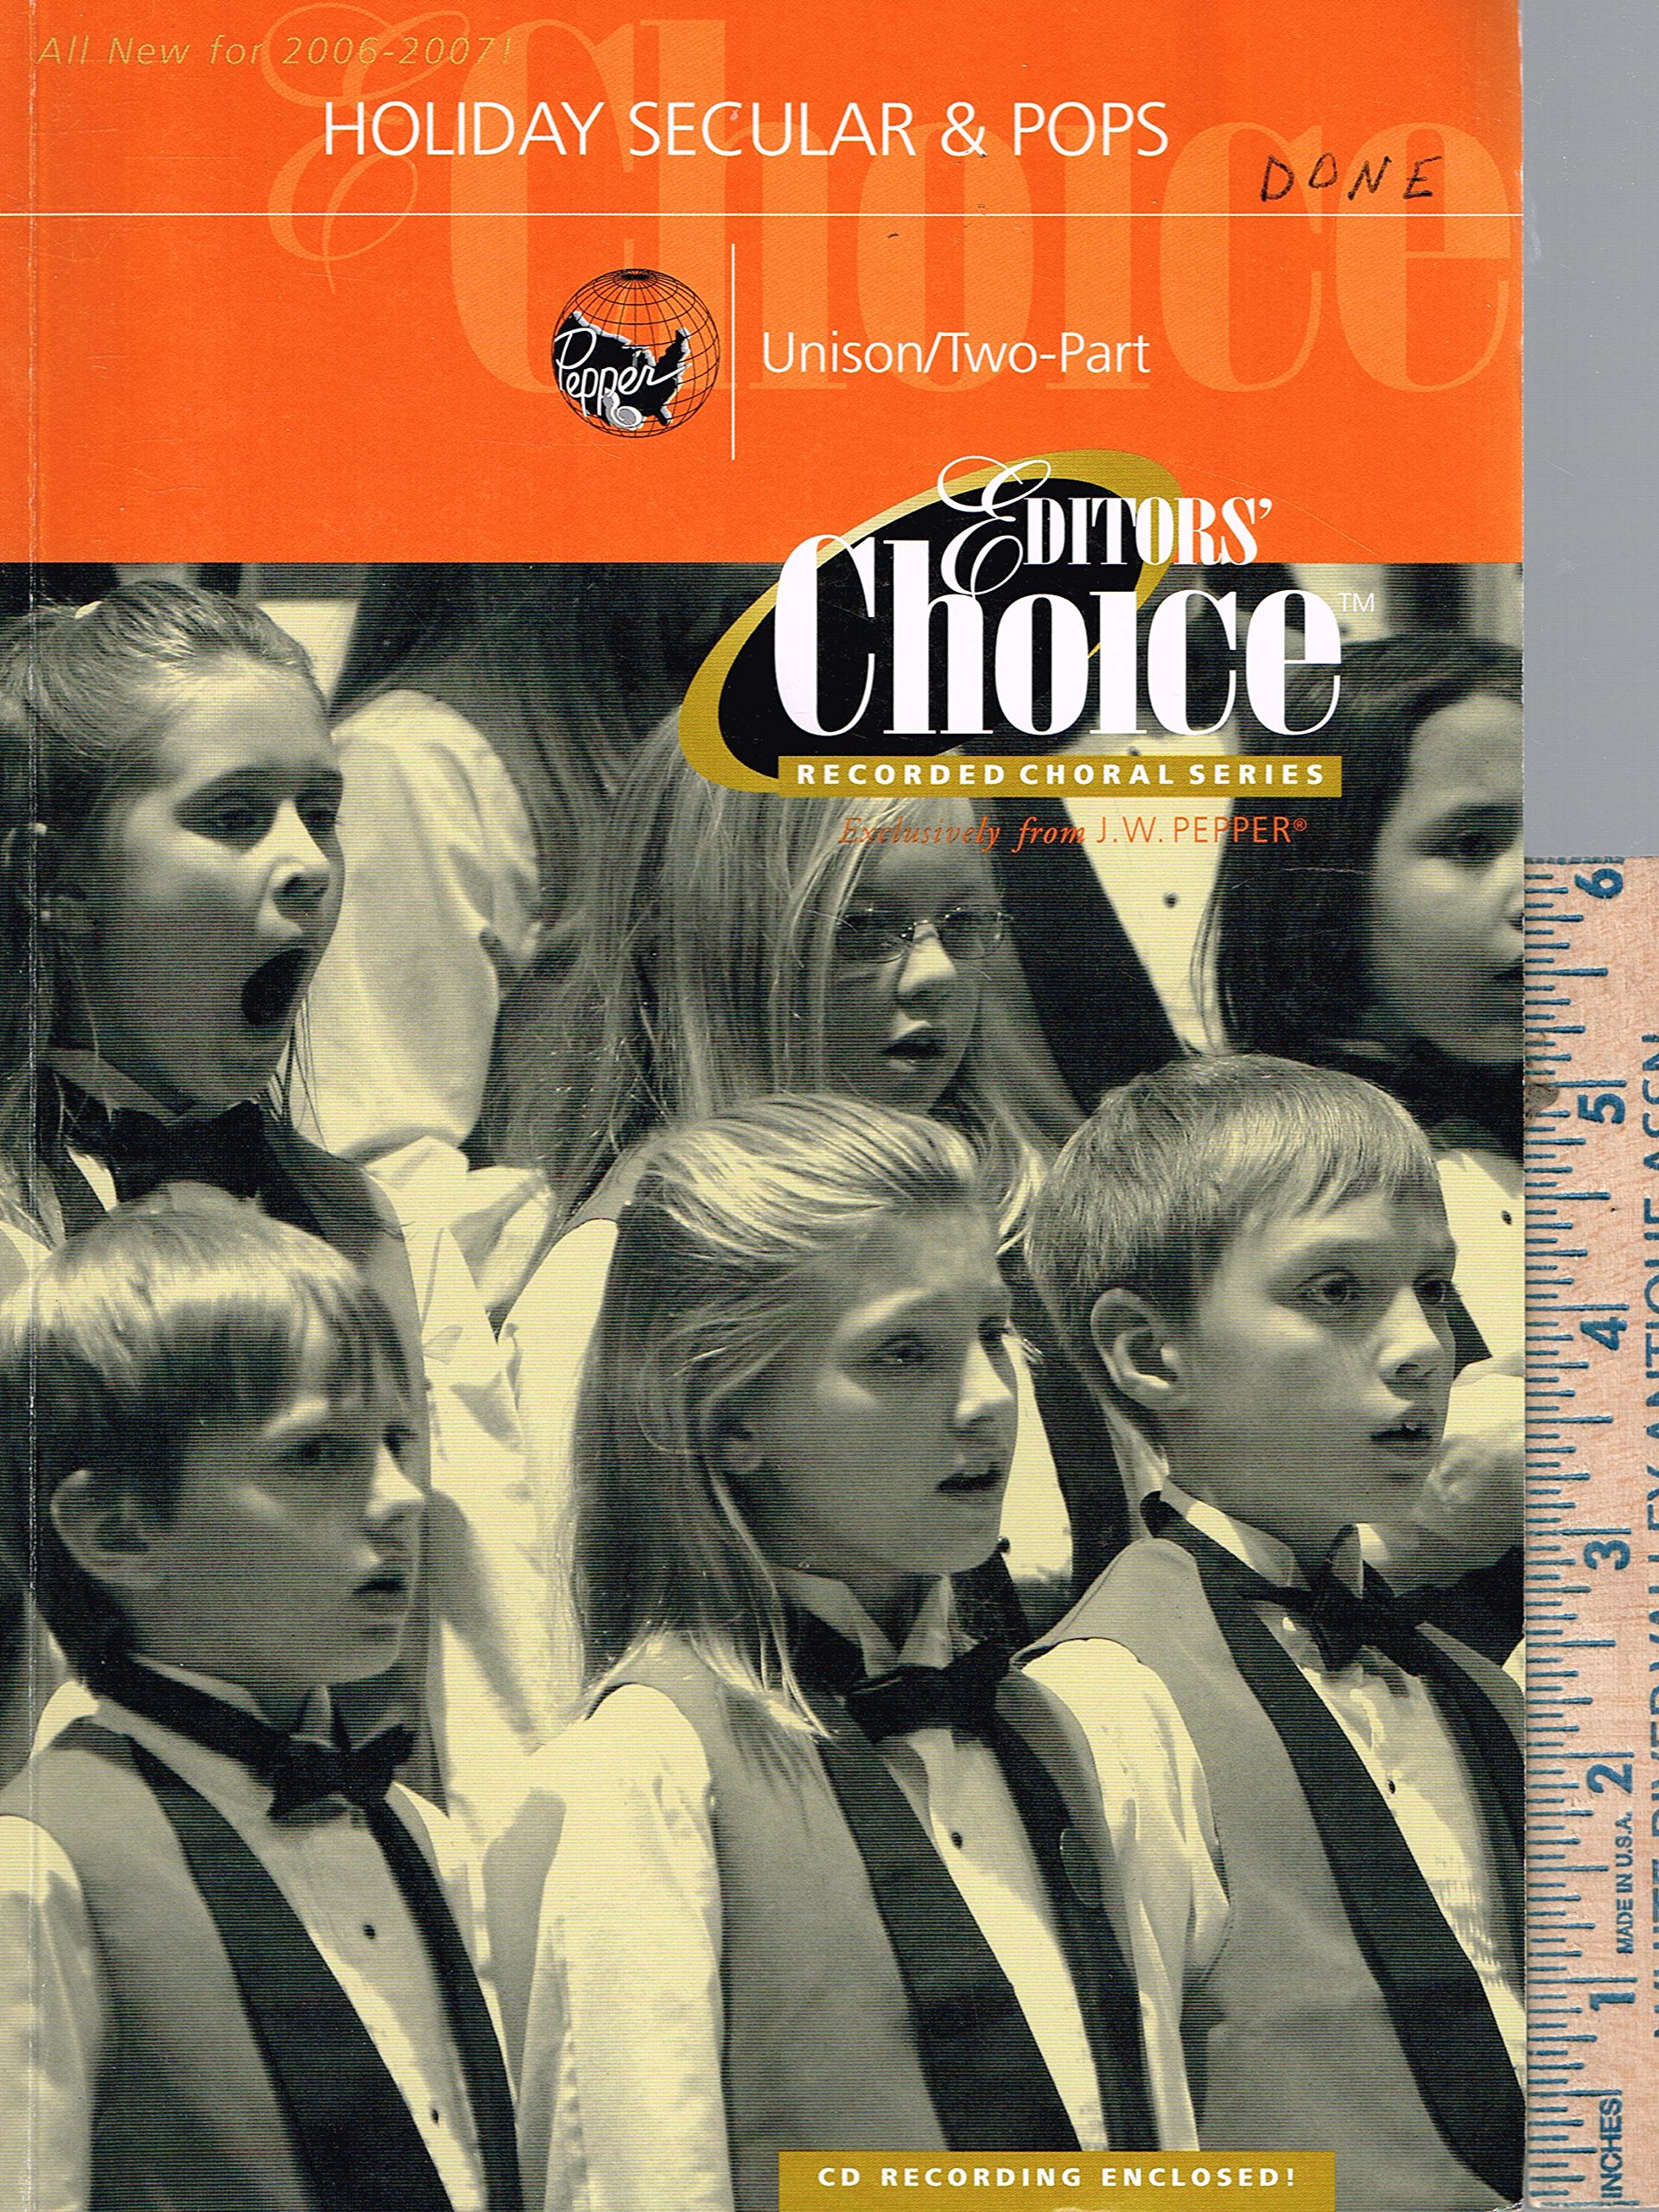 J W Pepper Editors' Choice Recorded Choral Series with audio